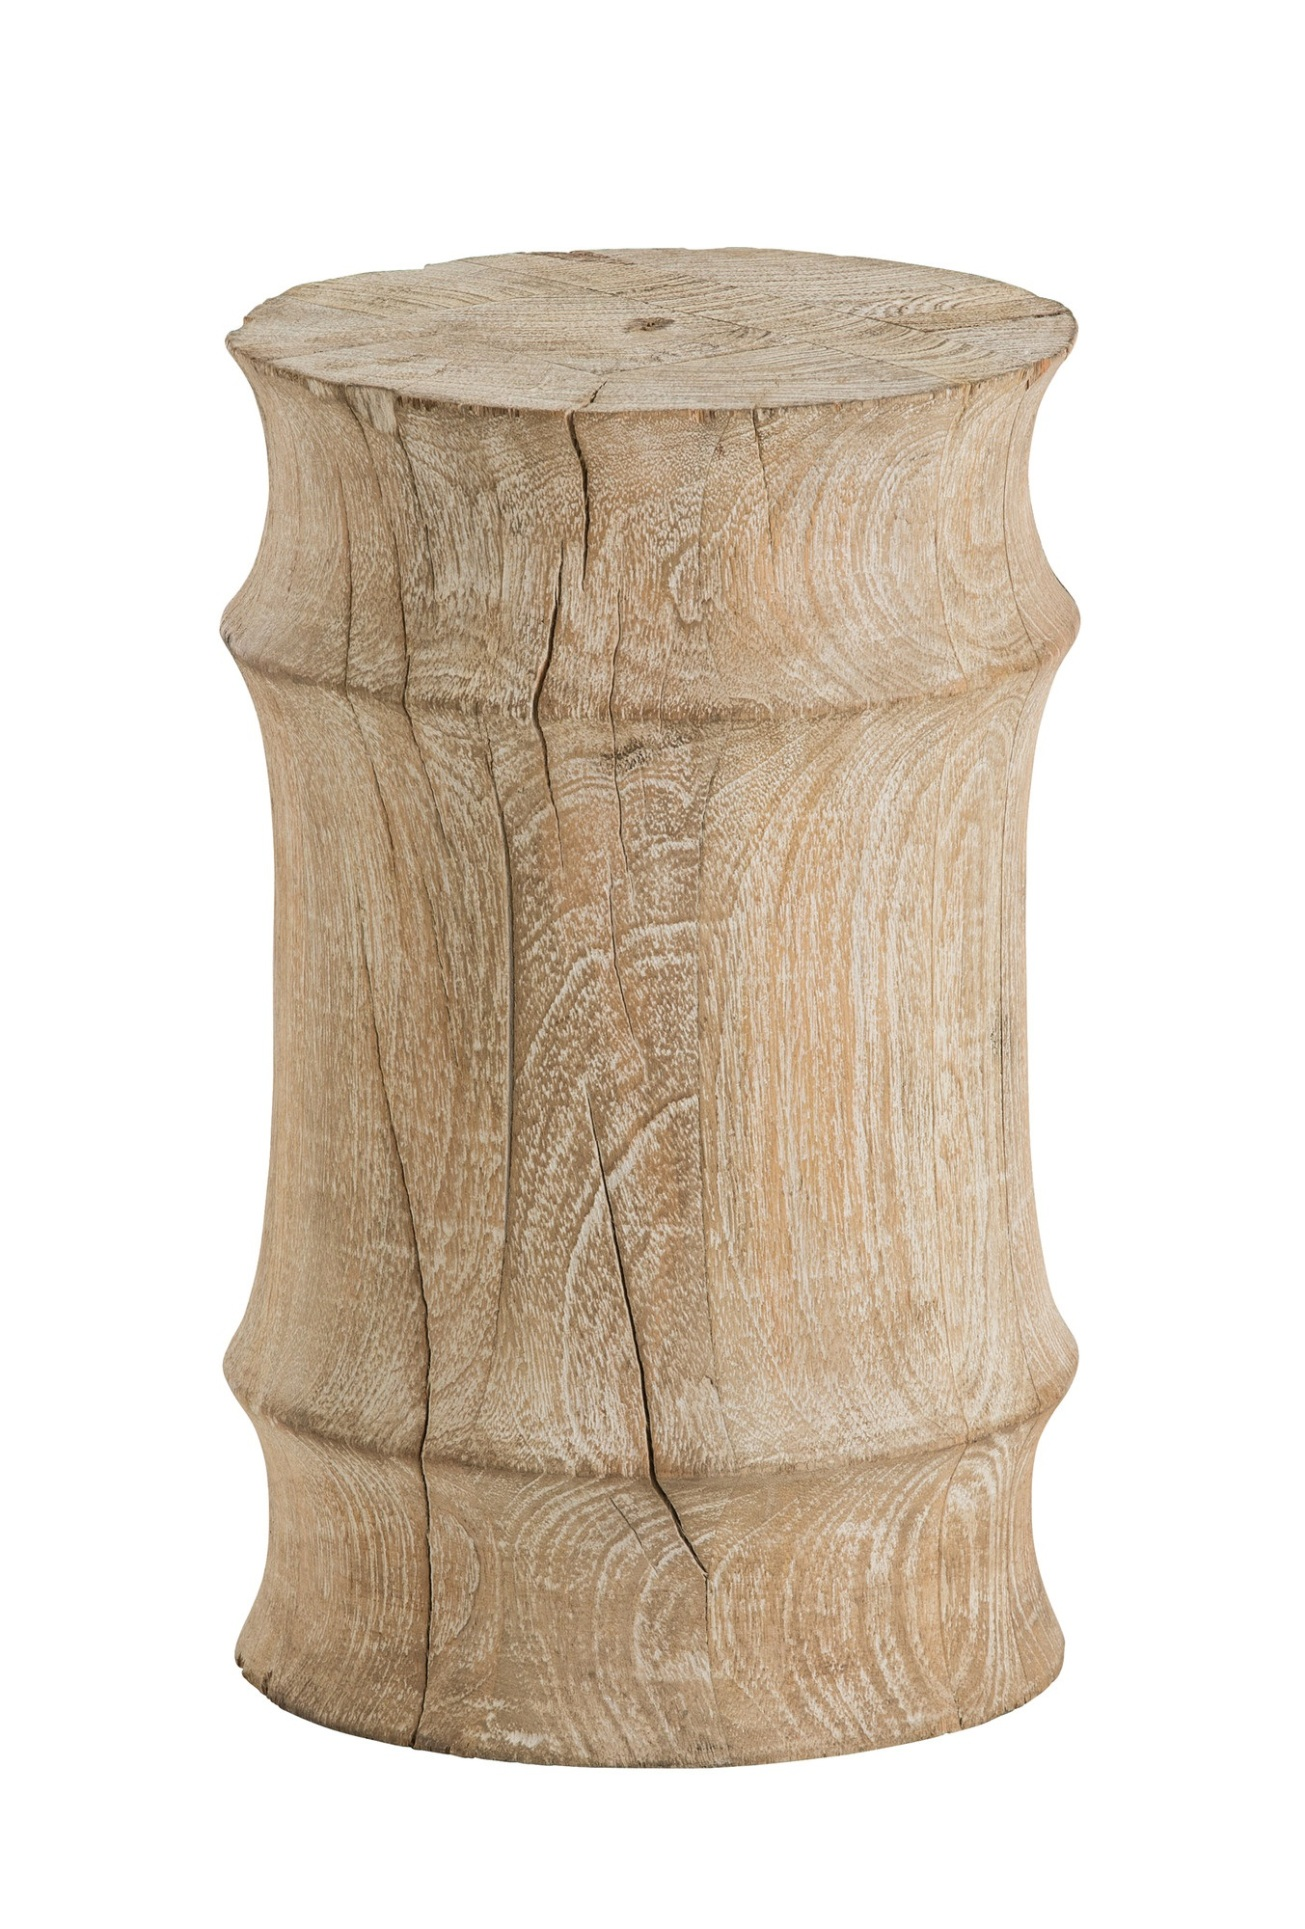 ARTERIORS Home Jesup Stool, Wayfair $480